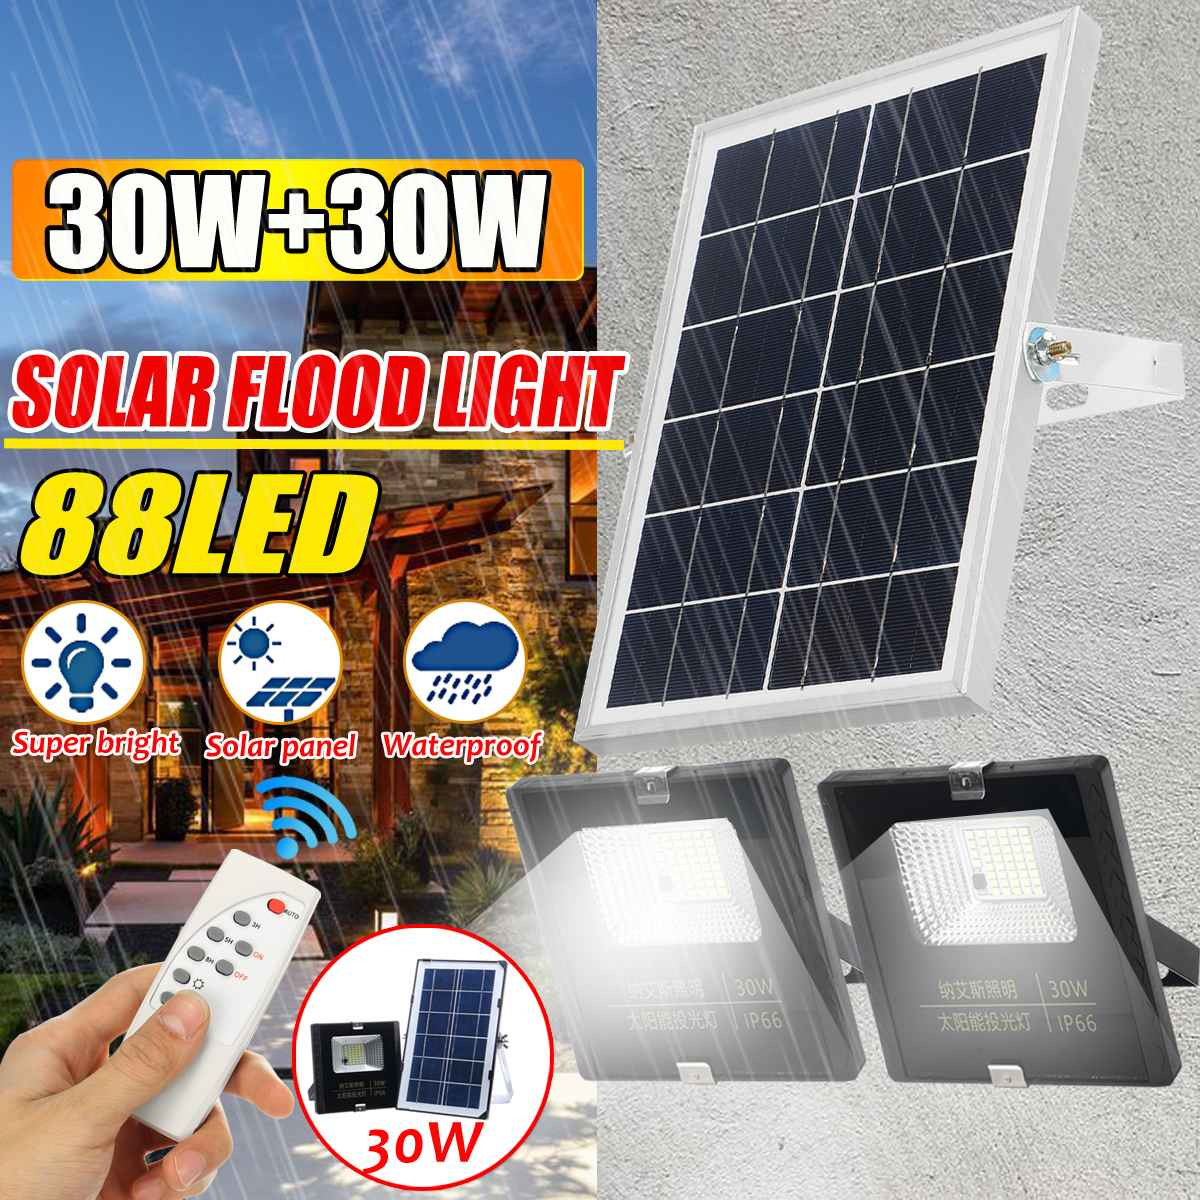 Solar Floodlight Led Portable Spotlight floodlight Outdoor Street Garden Light Waterproof Wall Lamp with Remote Control 30 + 30w